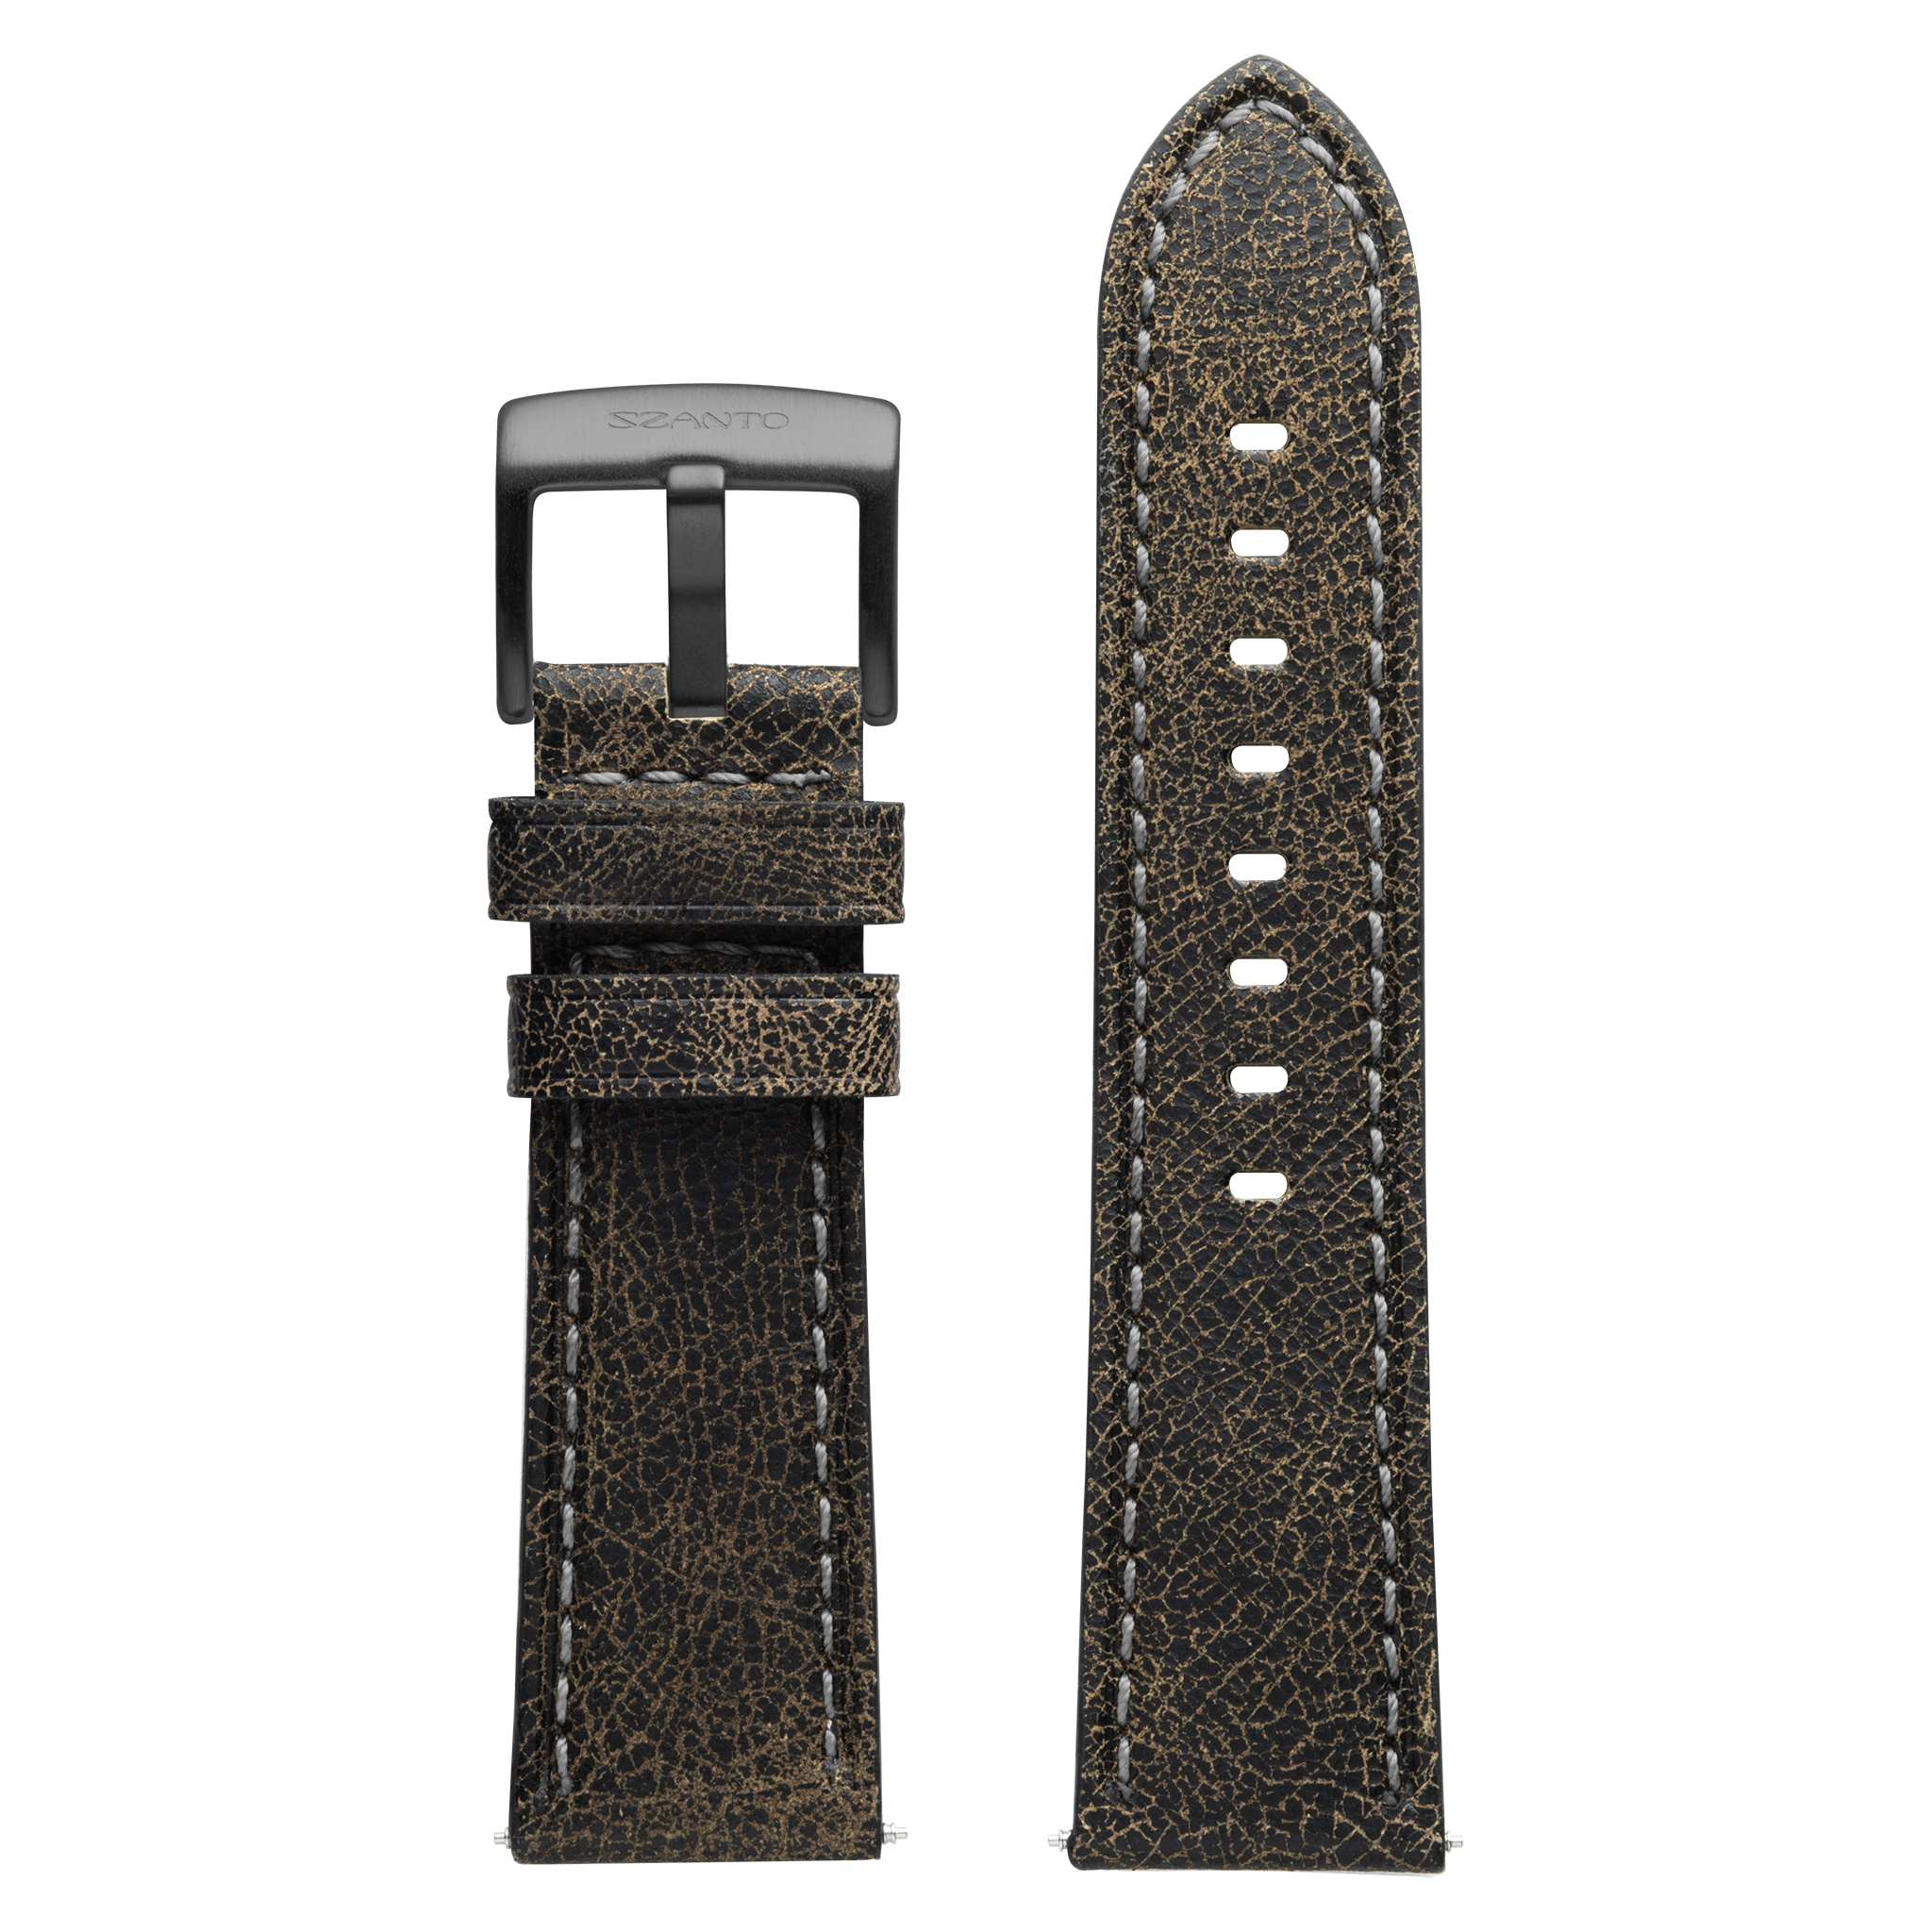 Szanto 24mm Black Leather Strap with Gray Stitch/Gun Gray Buckle - 2600 Series